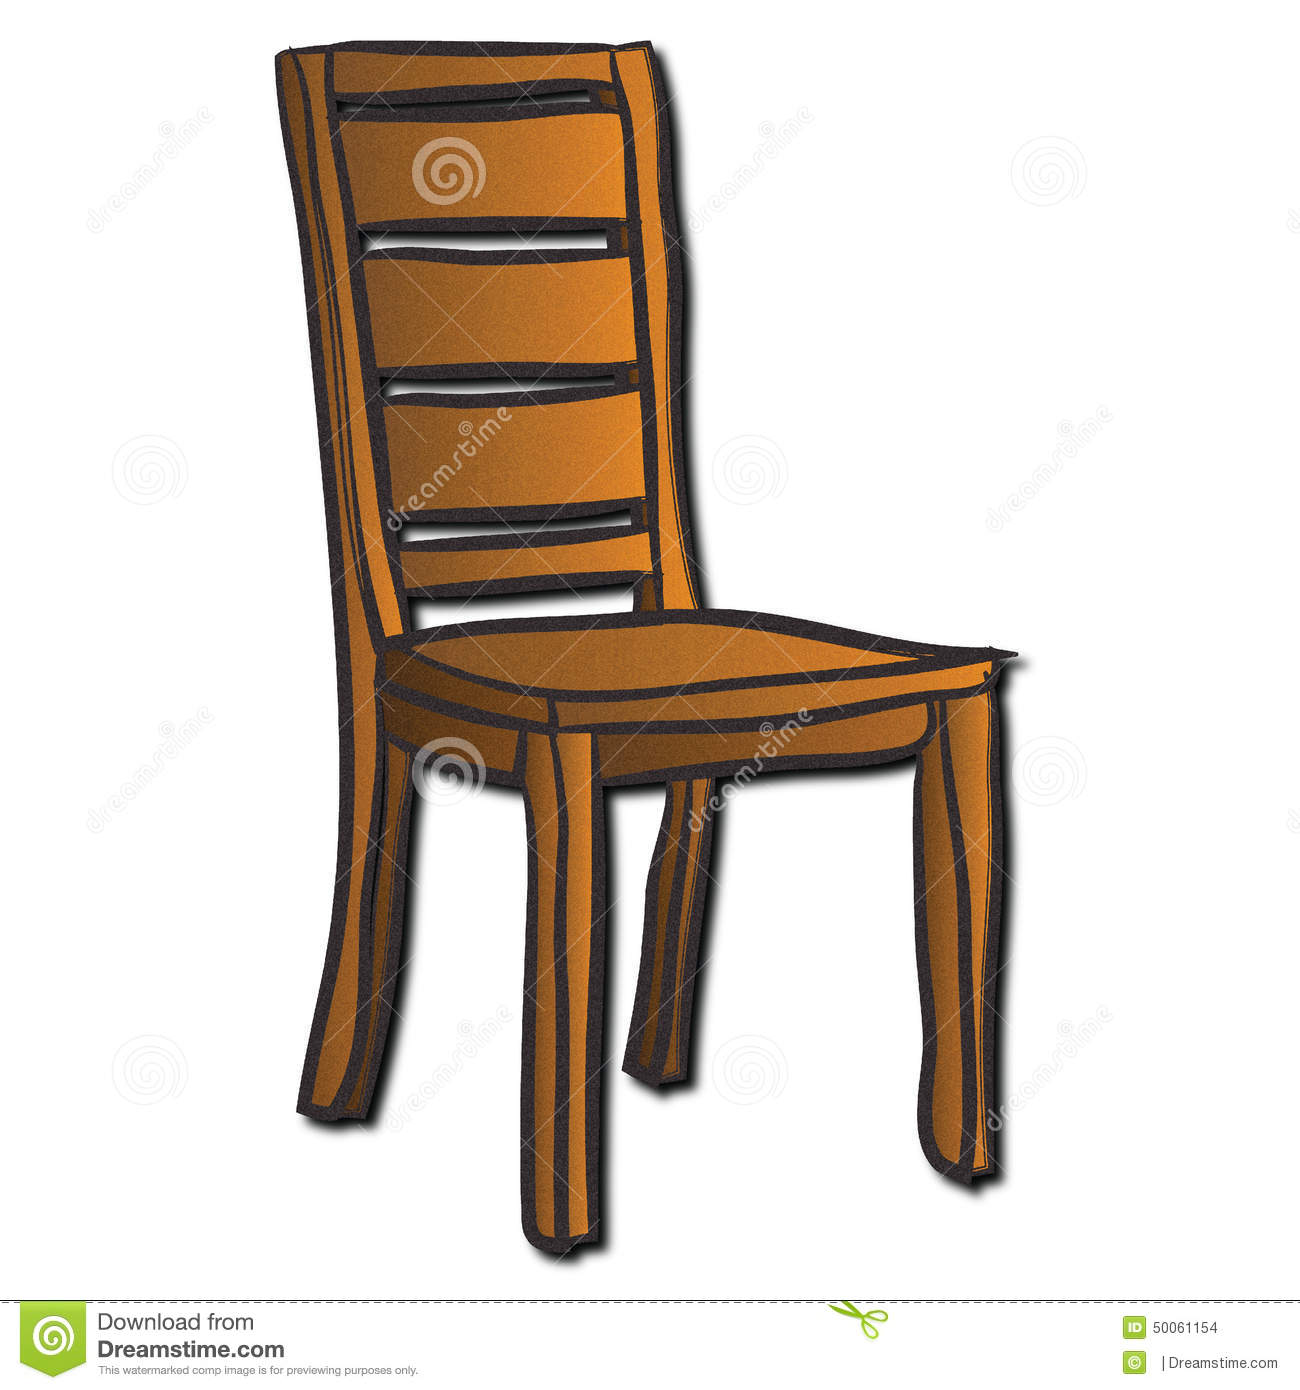 A Wooden Chair Stock Illustration.